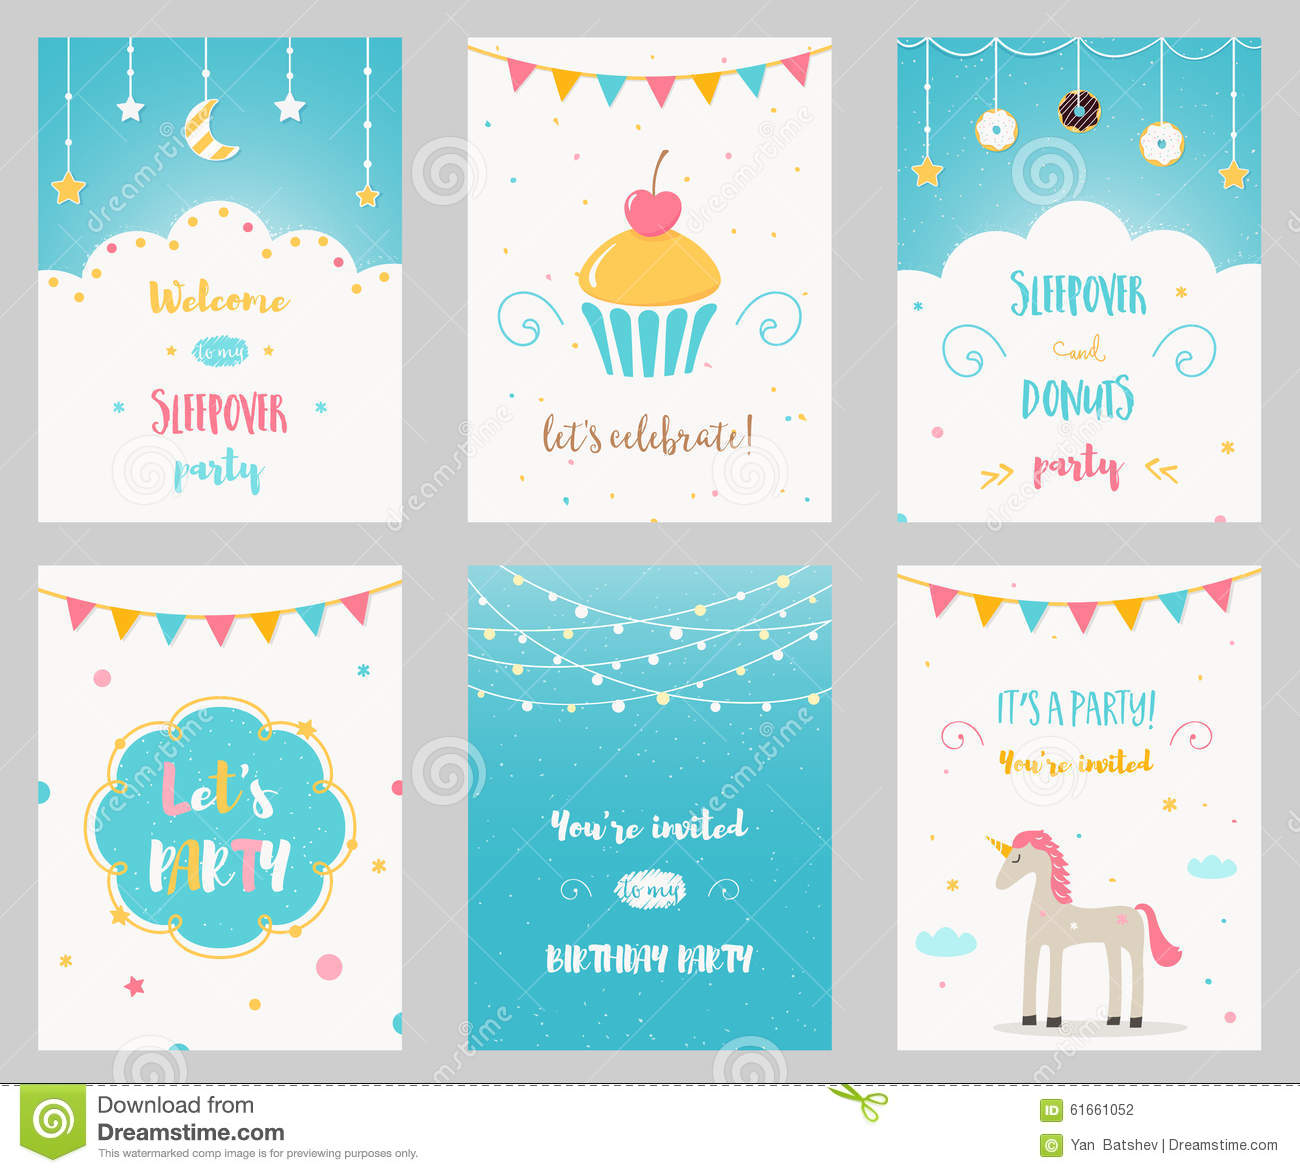 Invitations For Sleepover Party with perfect invitation sample